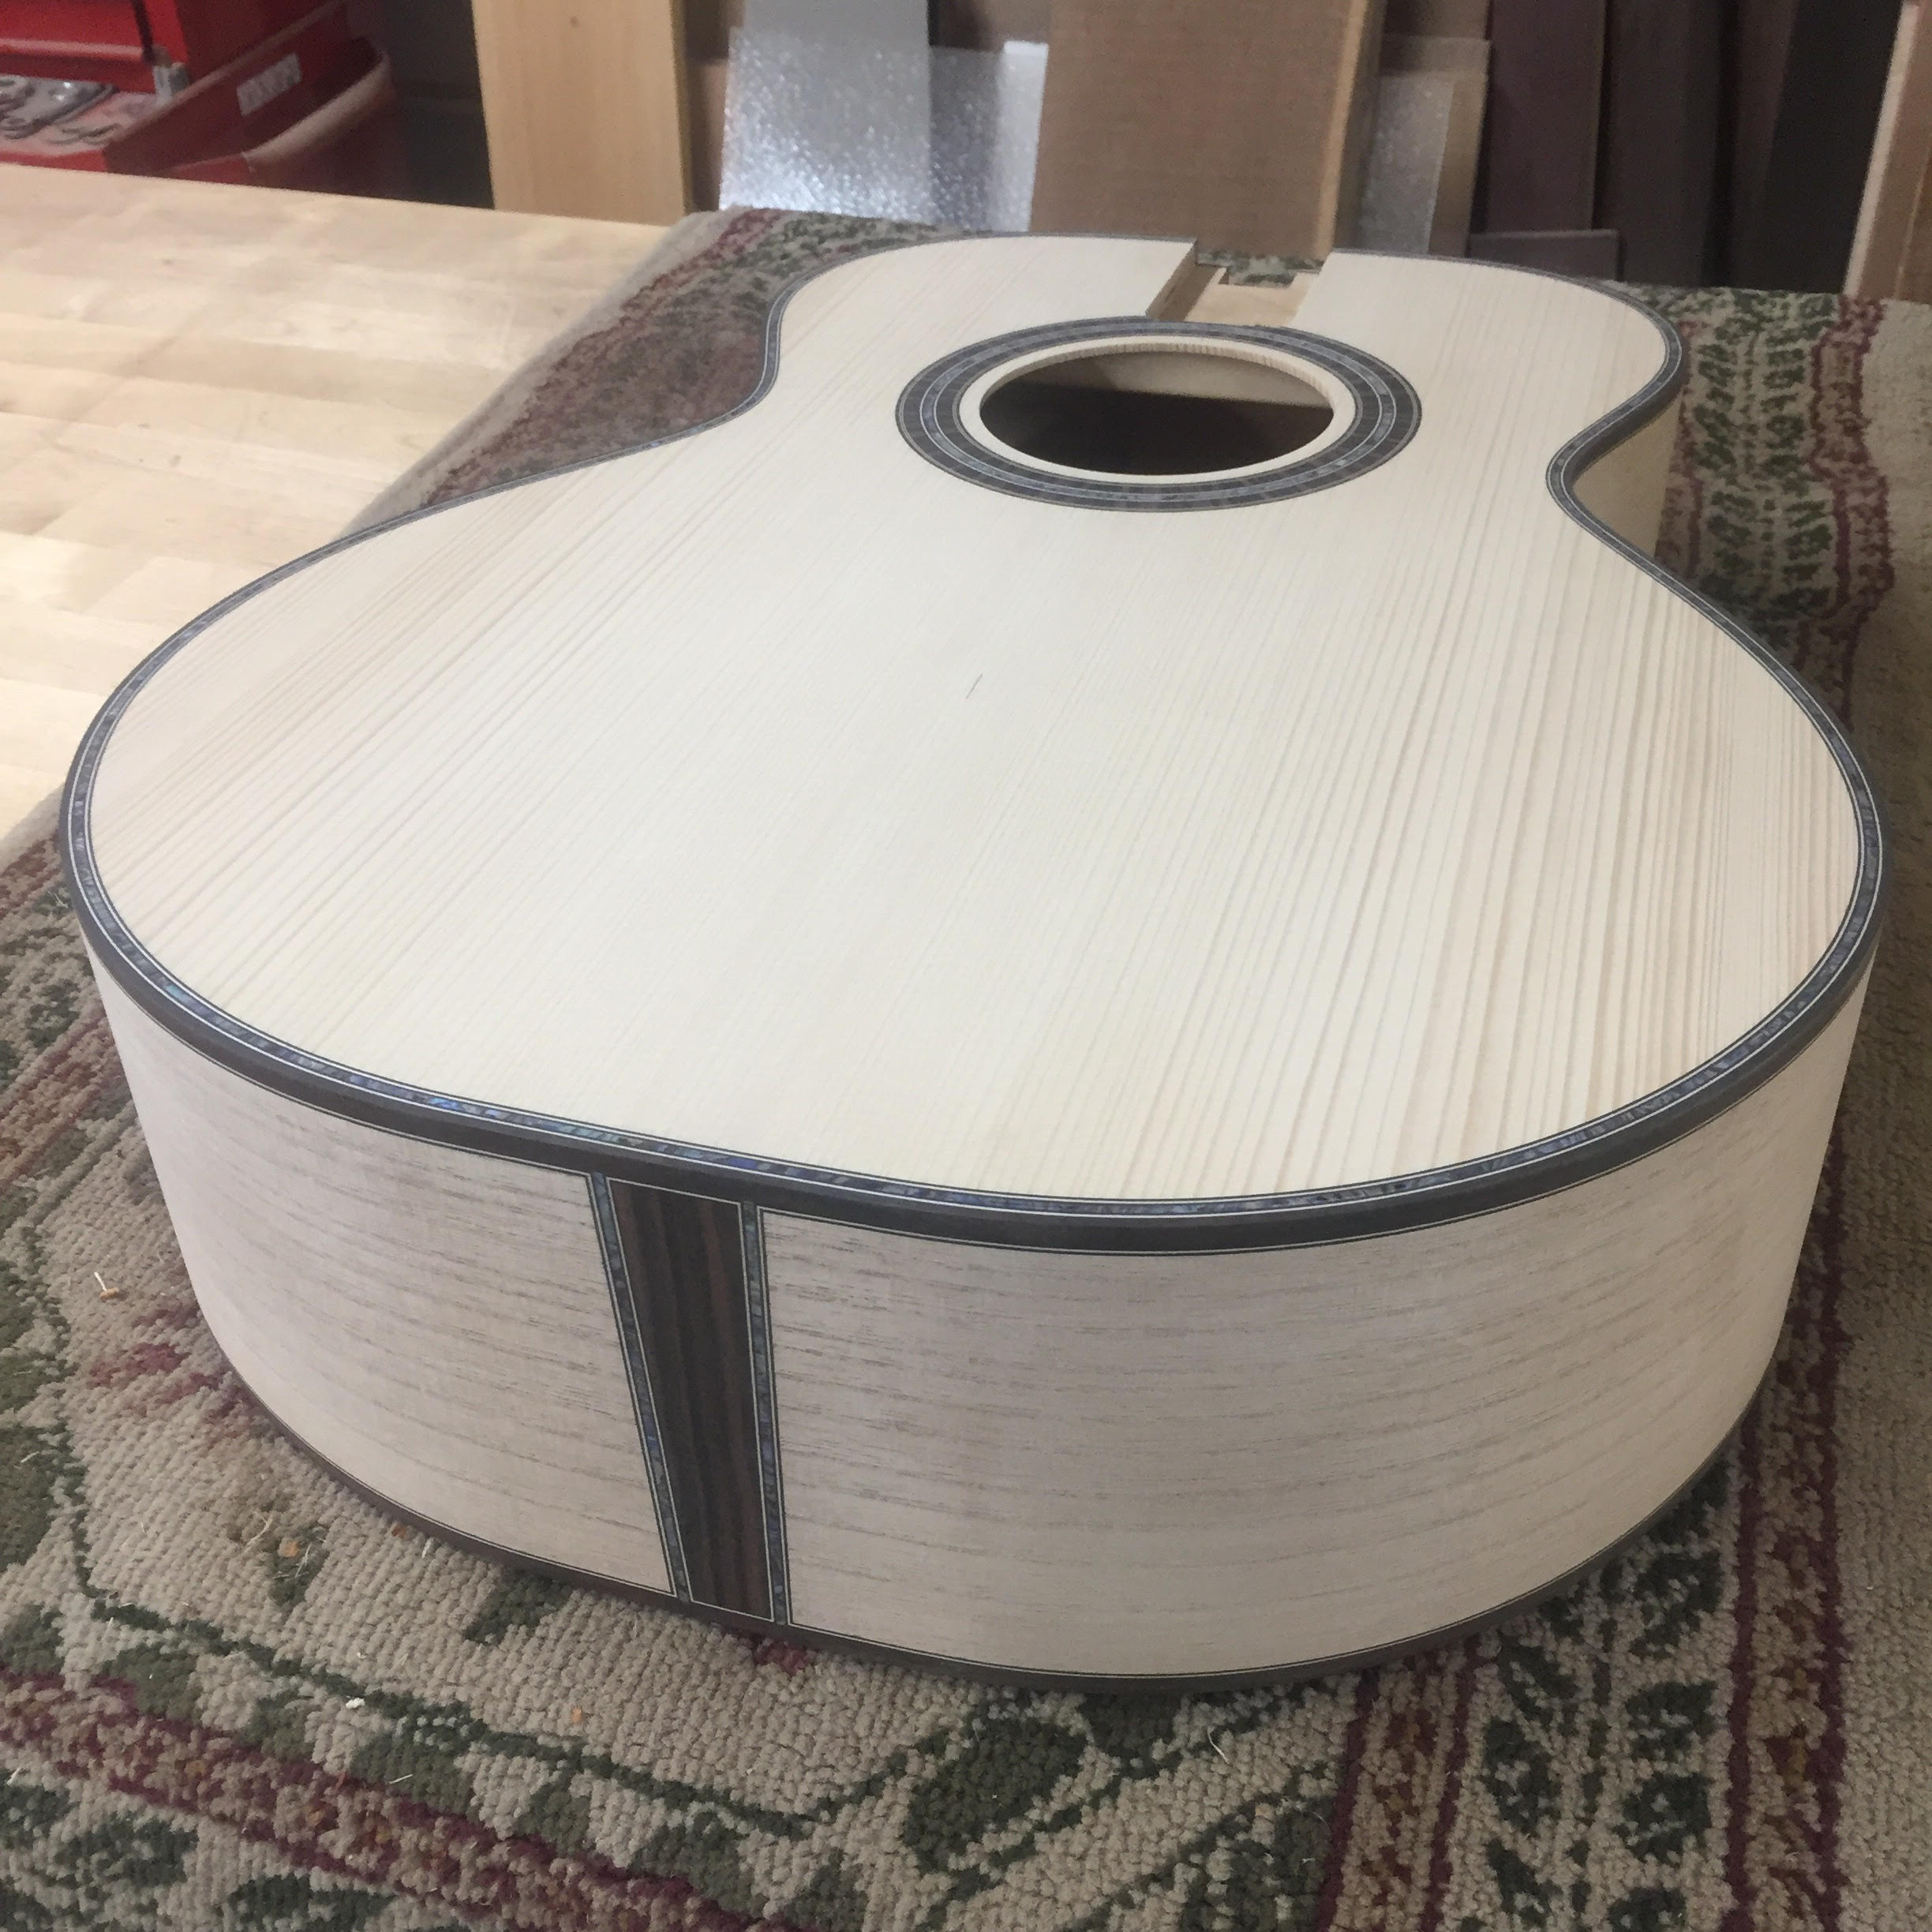 Local luthier Drew Heinonen makes guitar from trees grown by Jimmy Carter